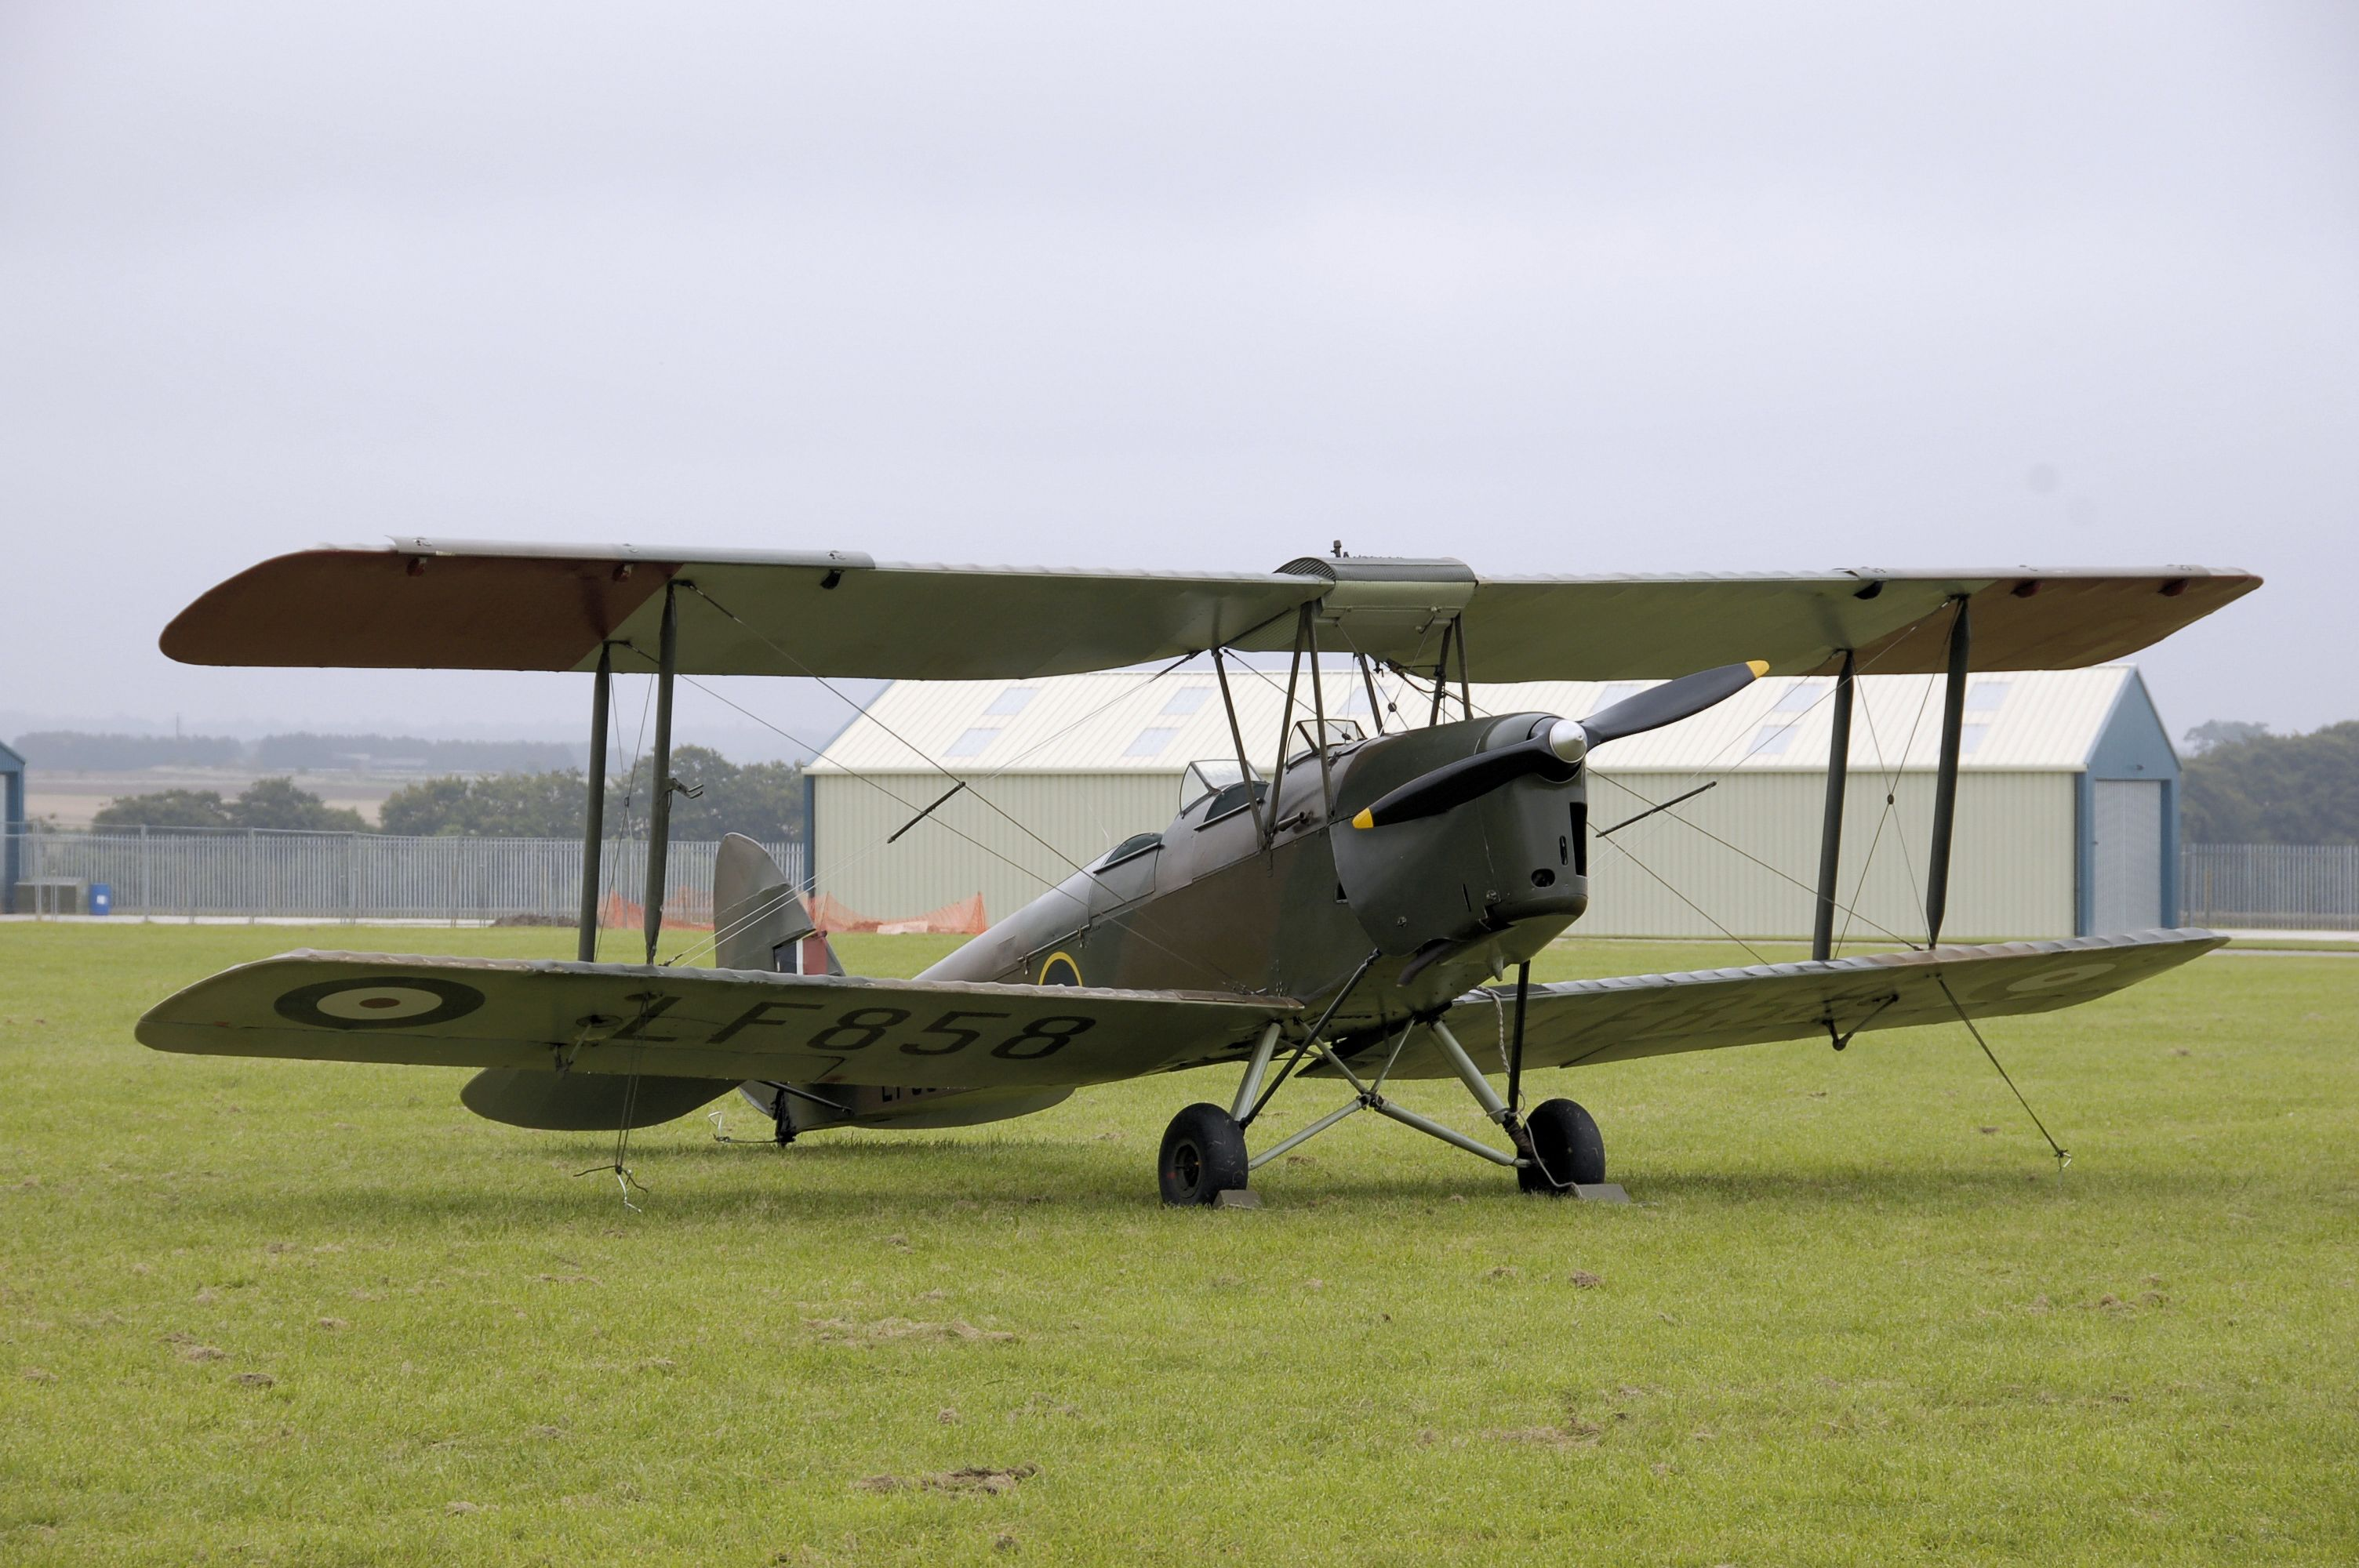 De_havilland_dh82b_queen_bee_lf858_arp.jpg (3008×2000